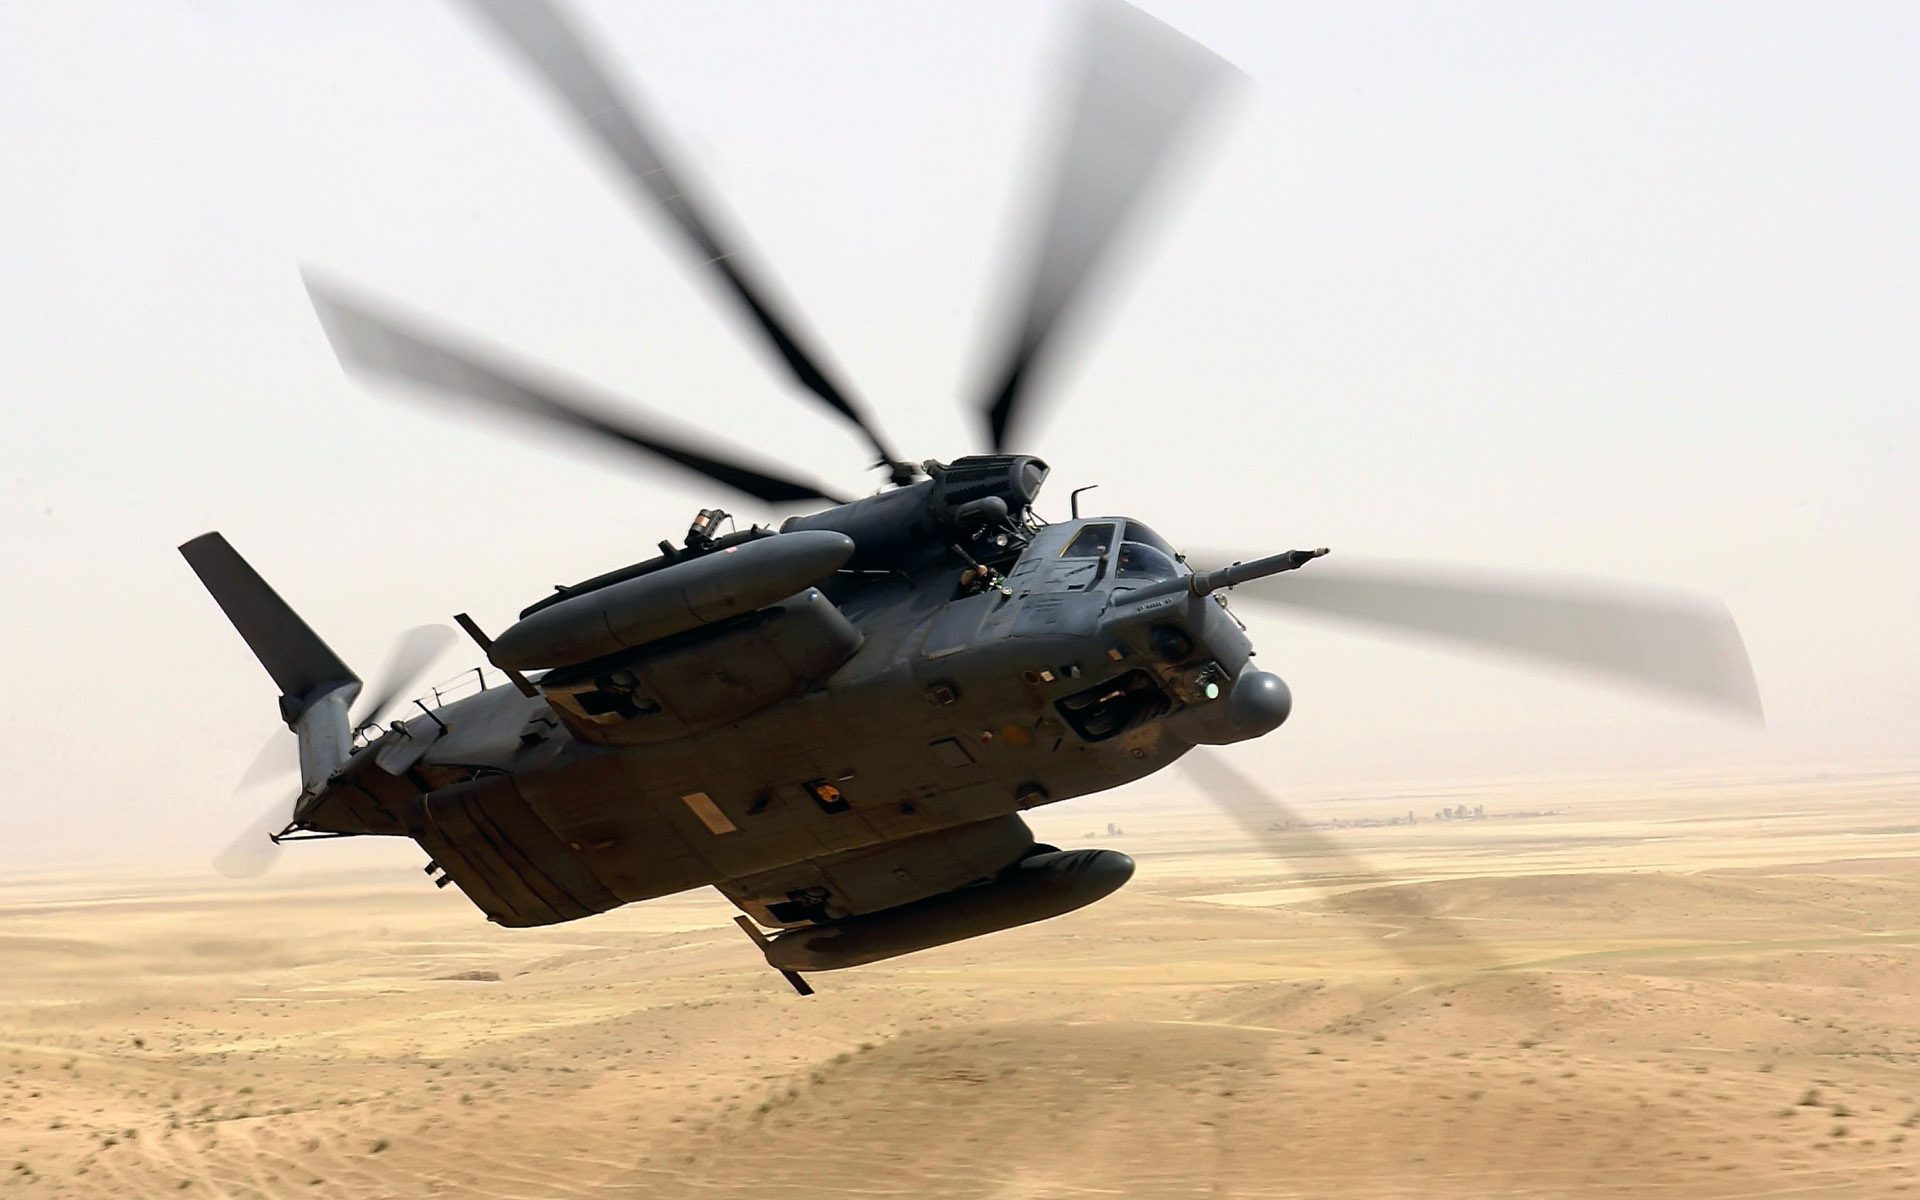 helicopter wallpaper 8017